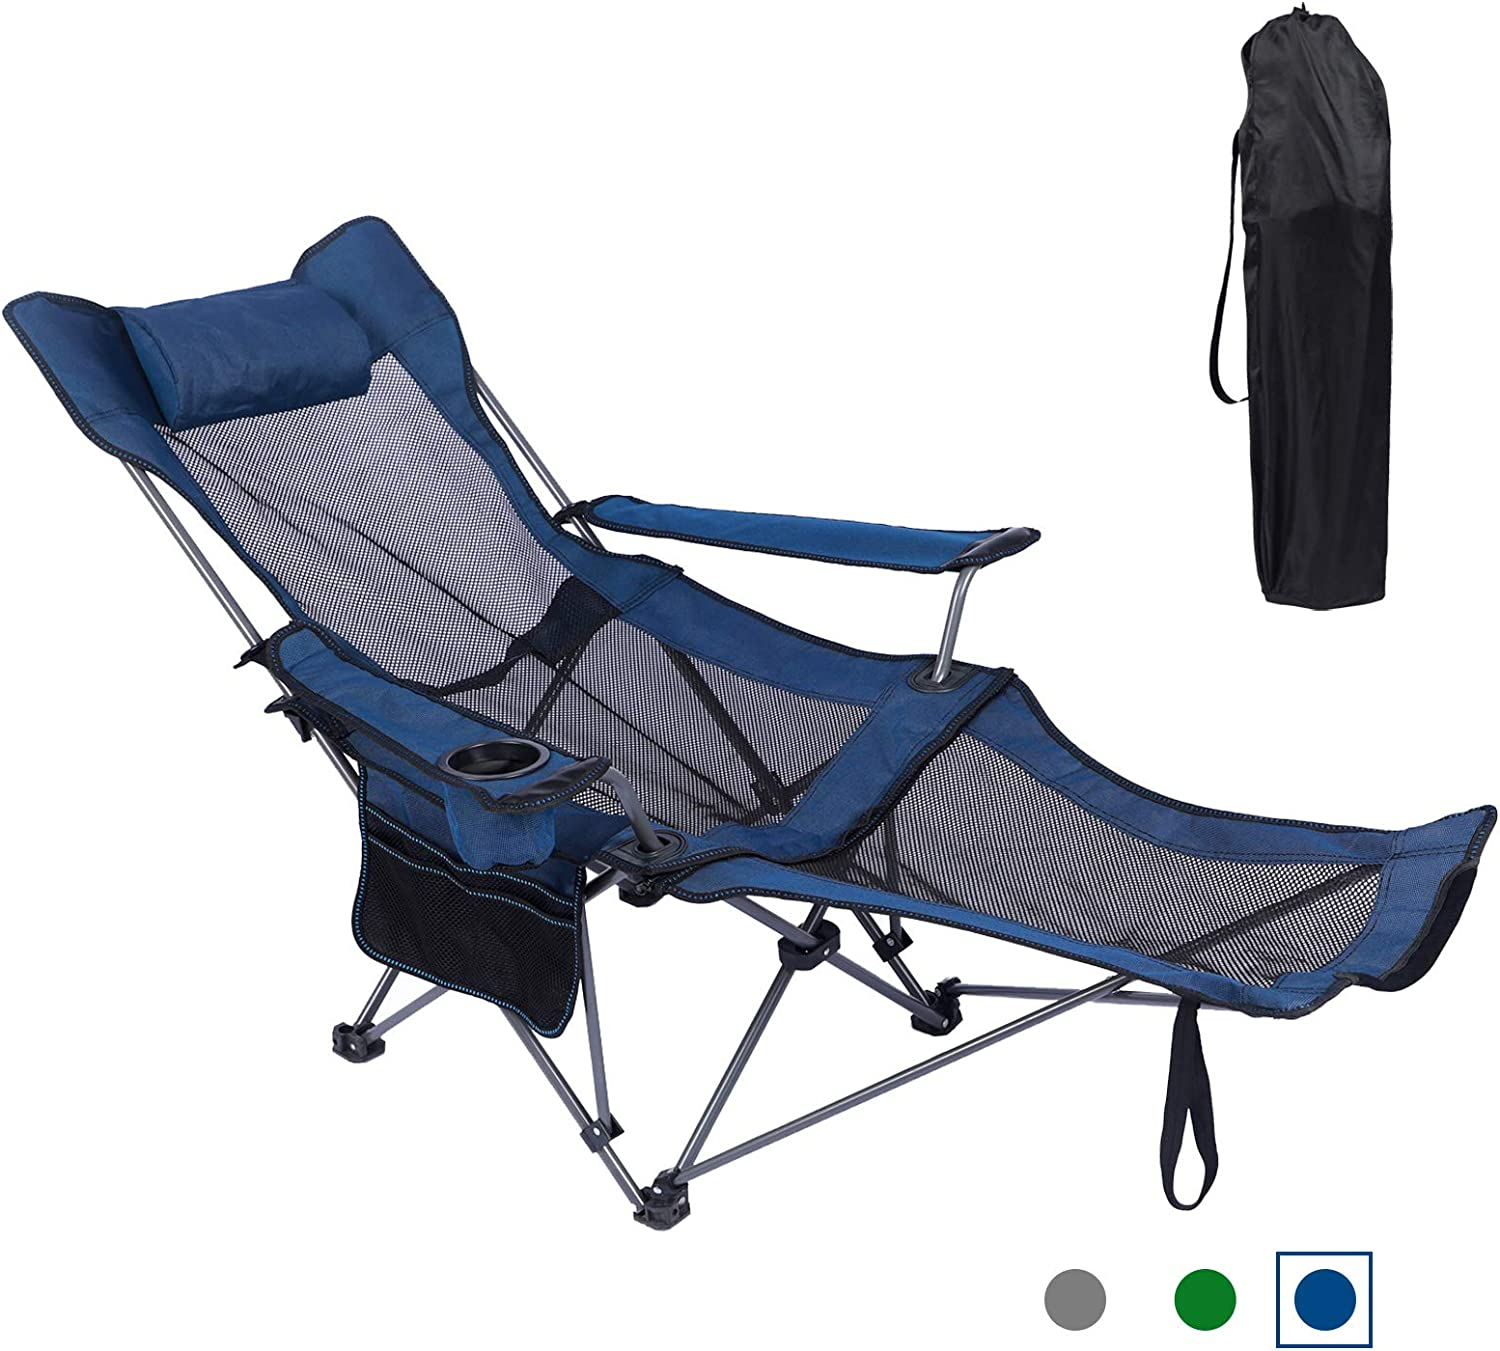 KEFOMOL Camping Lounge Chair, Portable Reclining Camping Chair, Folding Camping Chair with Footrest,Headrest & Storage Bag,Mesh Recliner with Backpack, 300lbs Weight Capacity